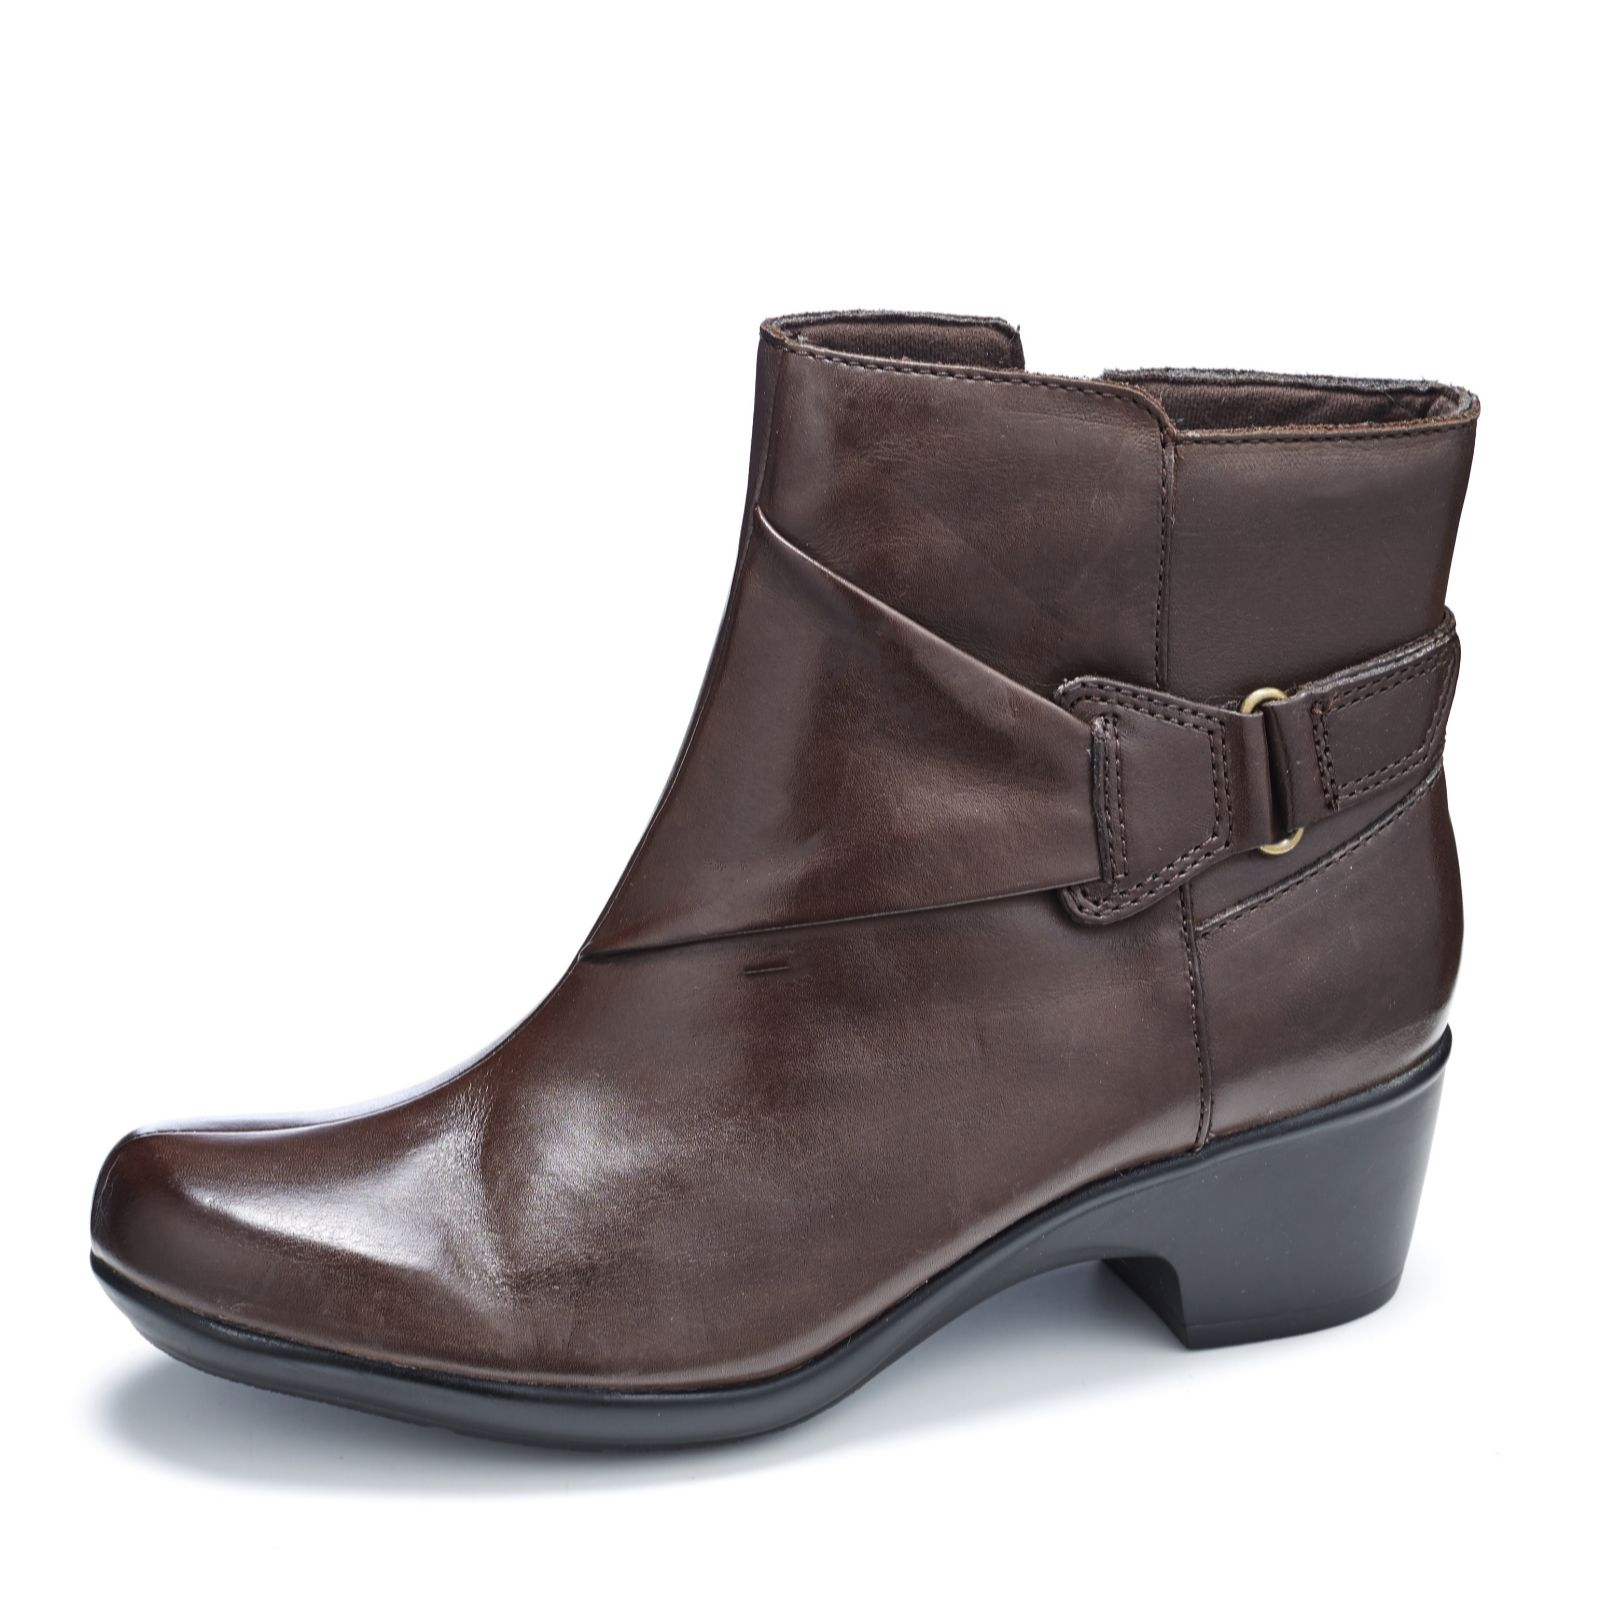 1 Qvc Uk Outlet Ankle Mccall Page Malia Clarks Boots Leather wq0zAw8